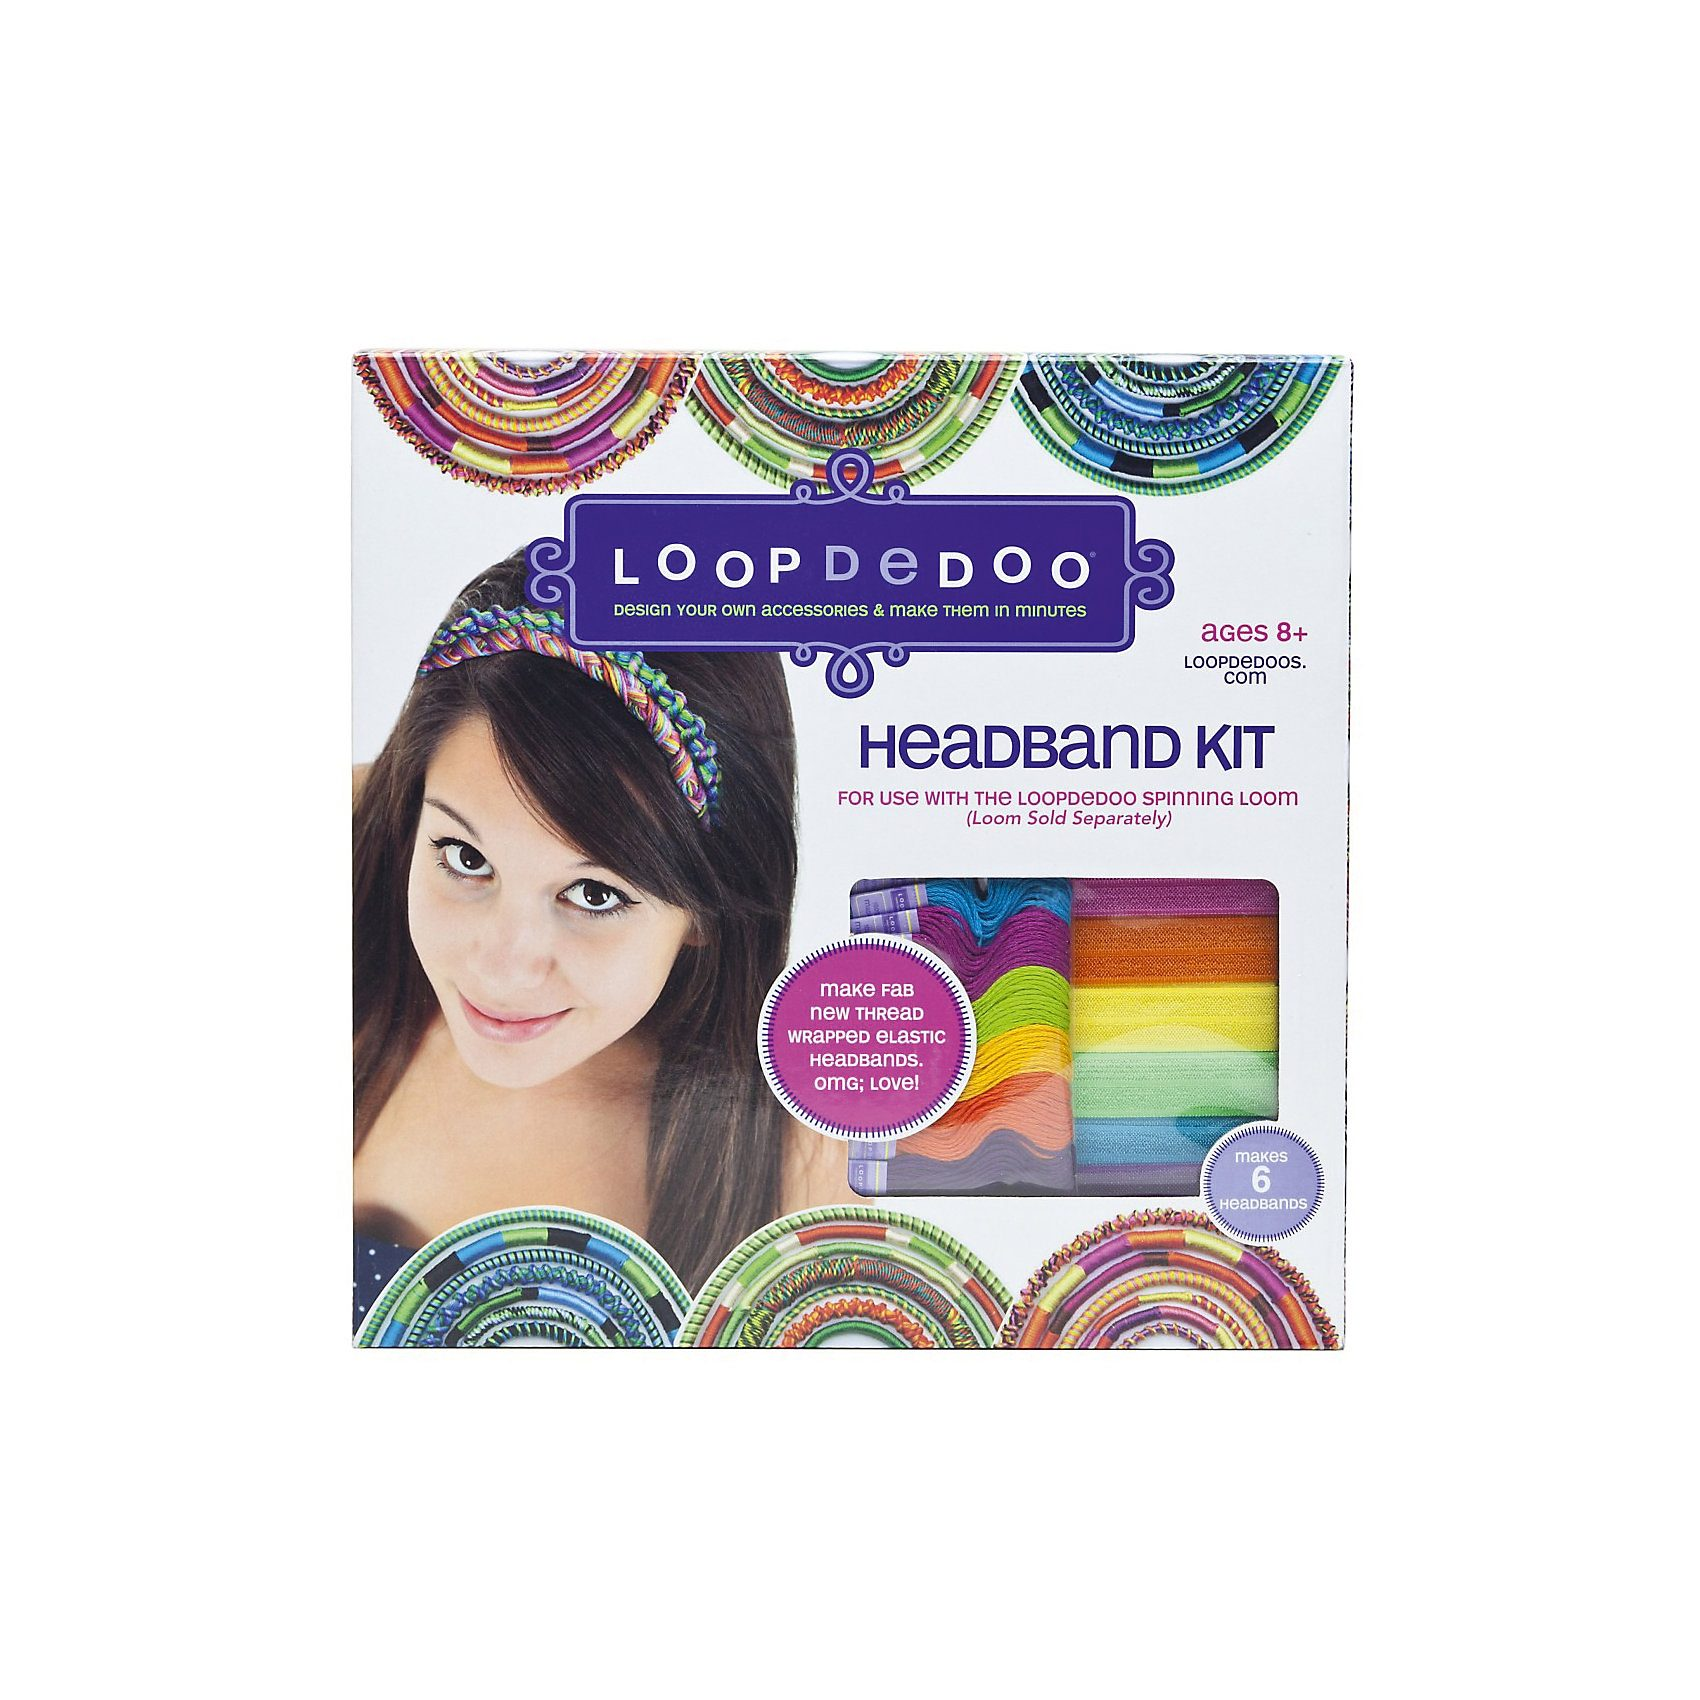 Loopdedoo Haarband Kit